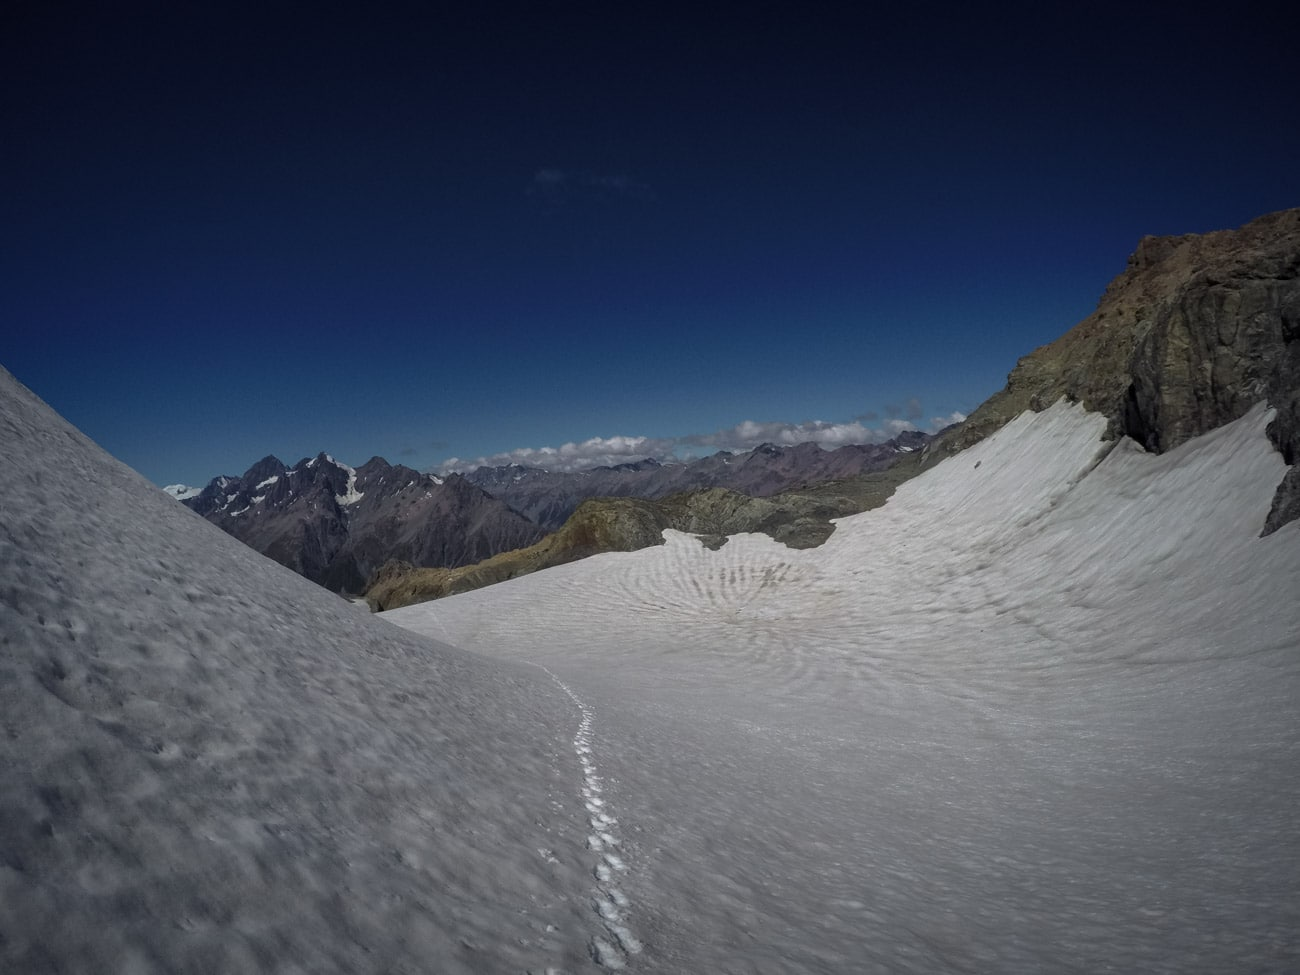 The Ball Glacier in Mount Cook